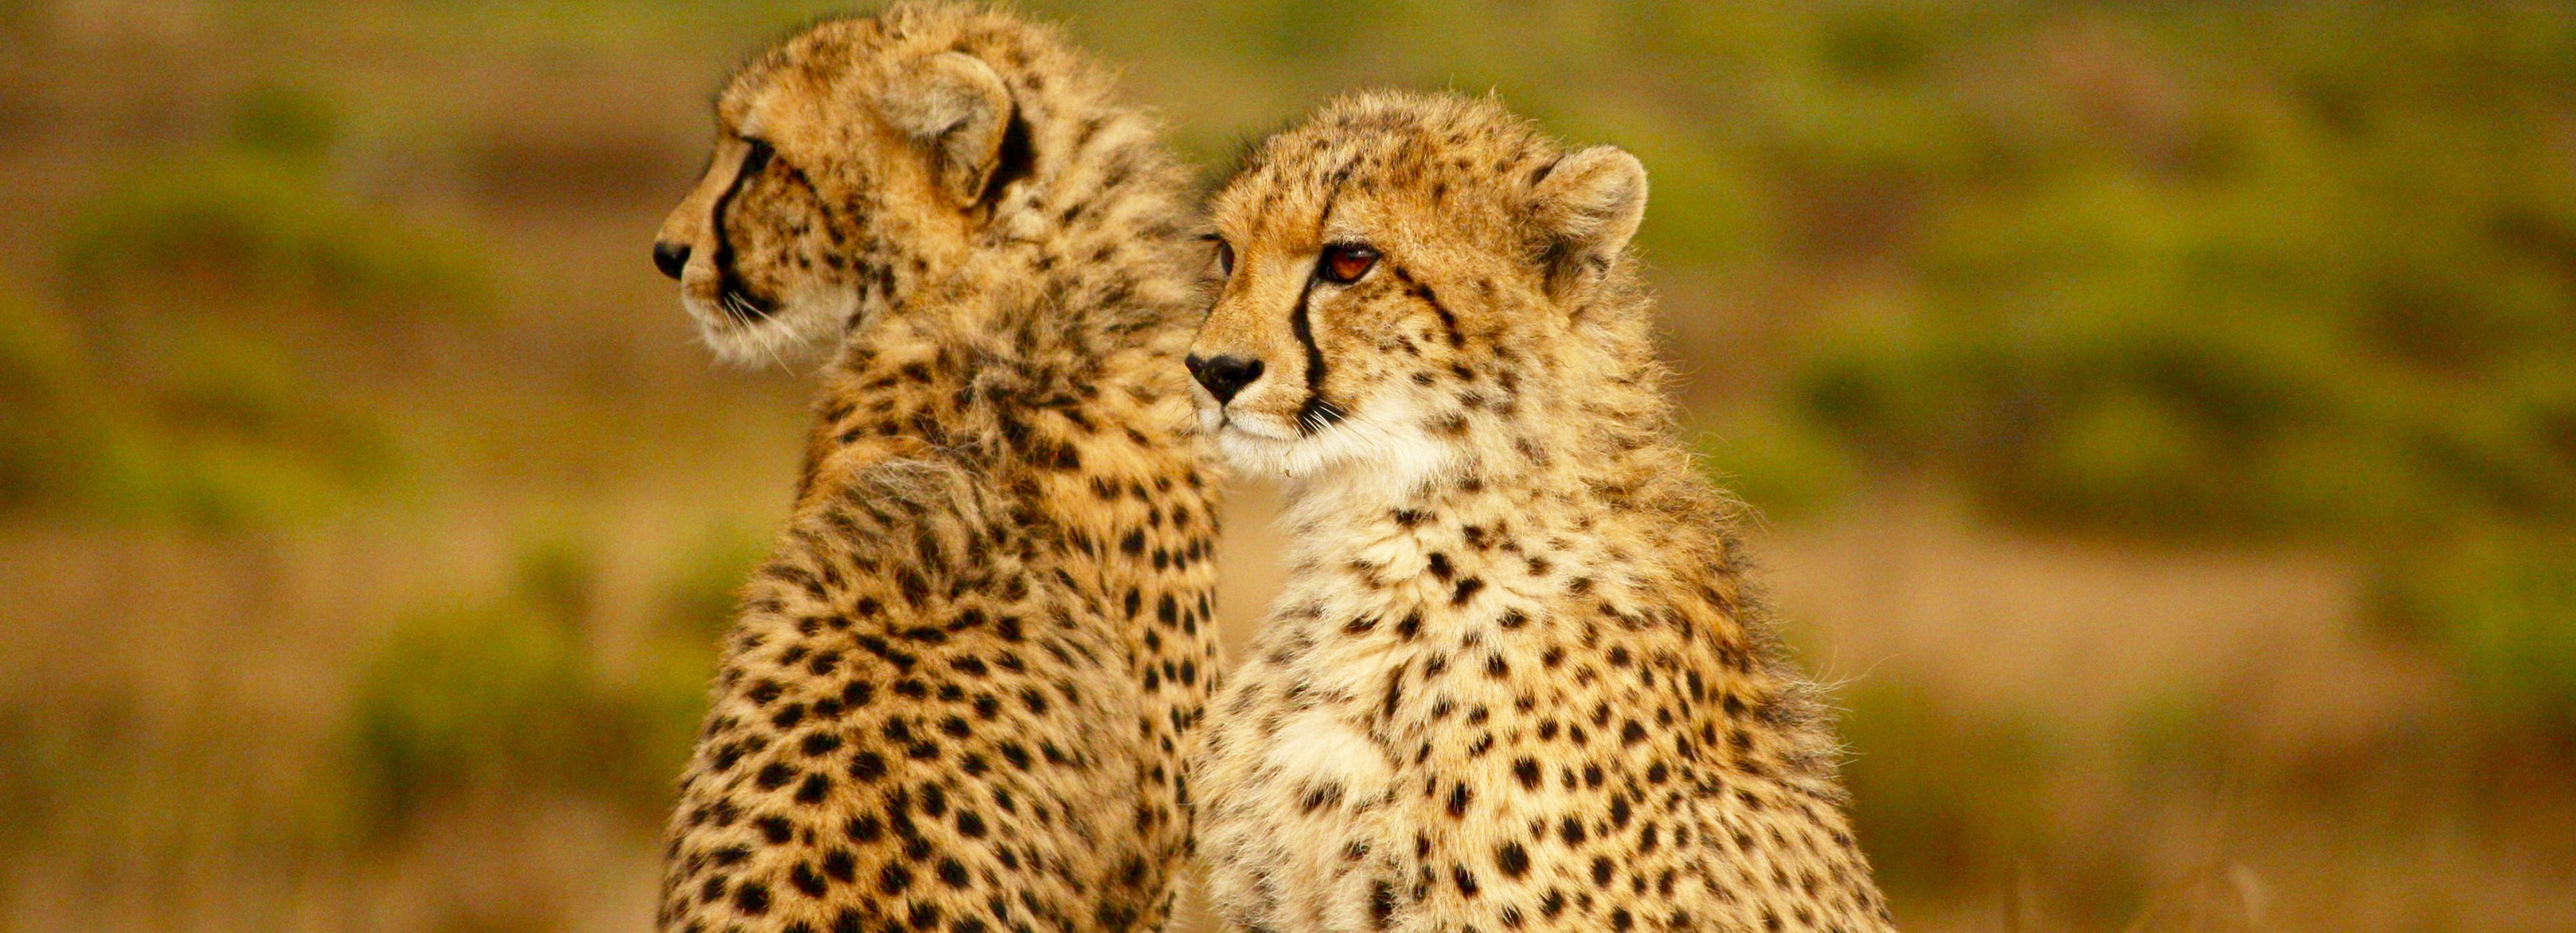 On Safari Africa - Safaris and Day Tours